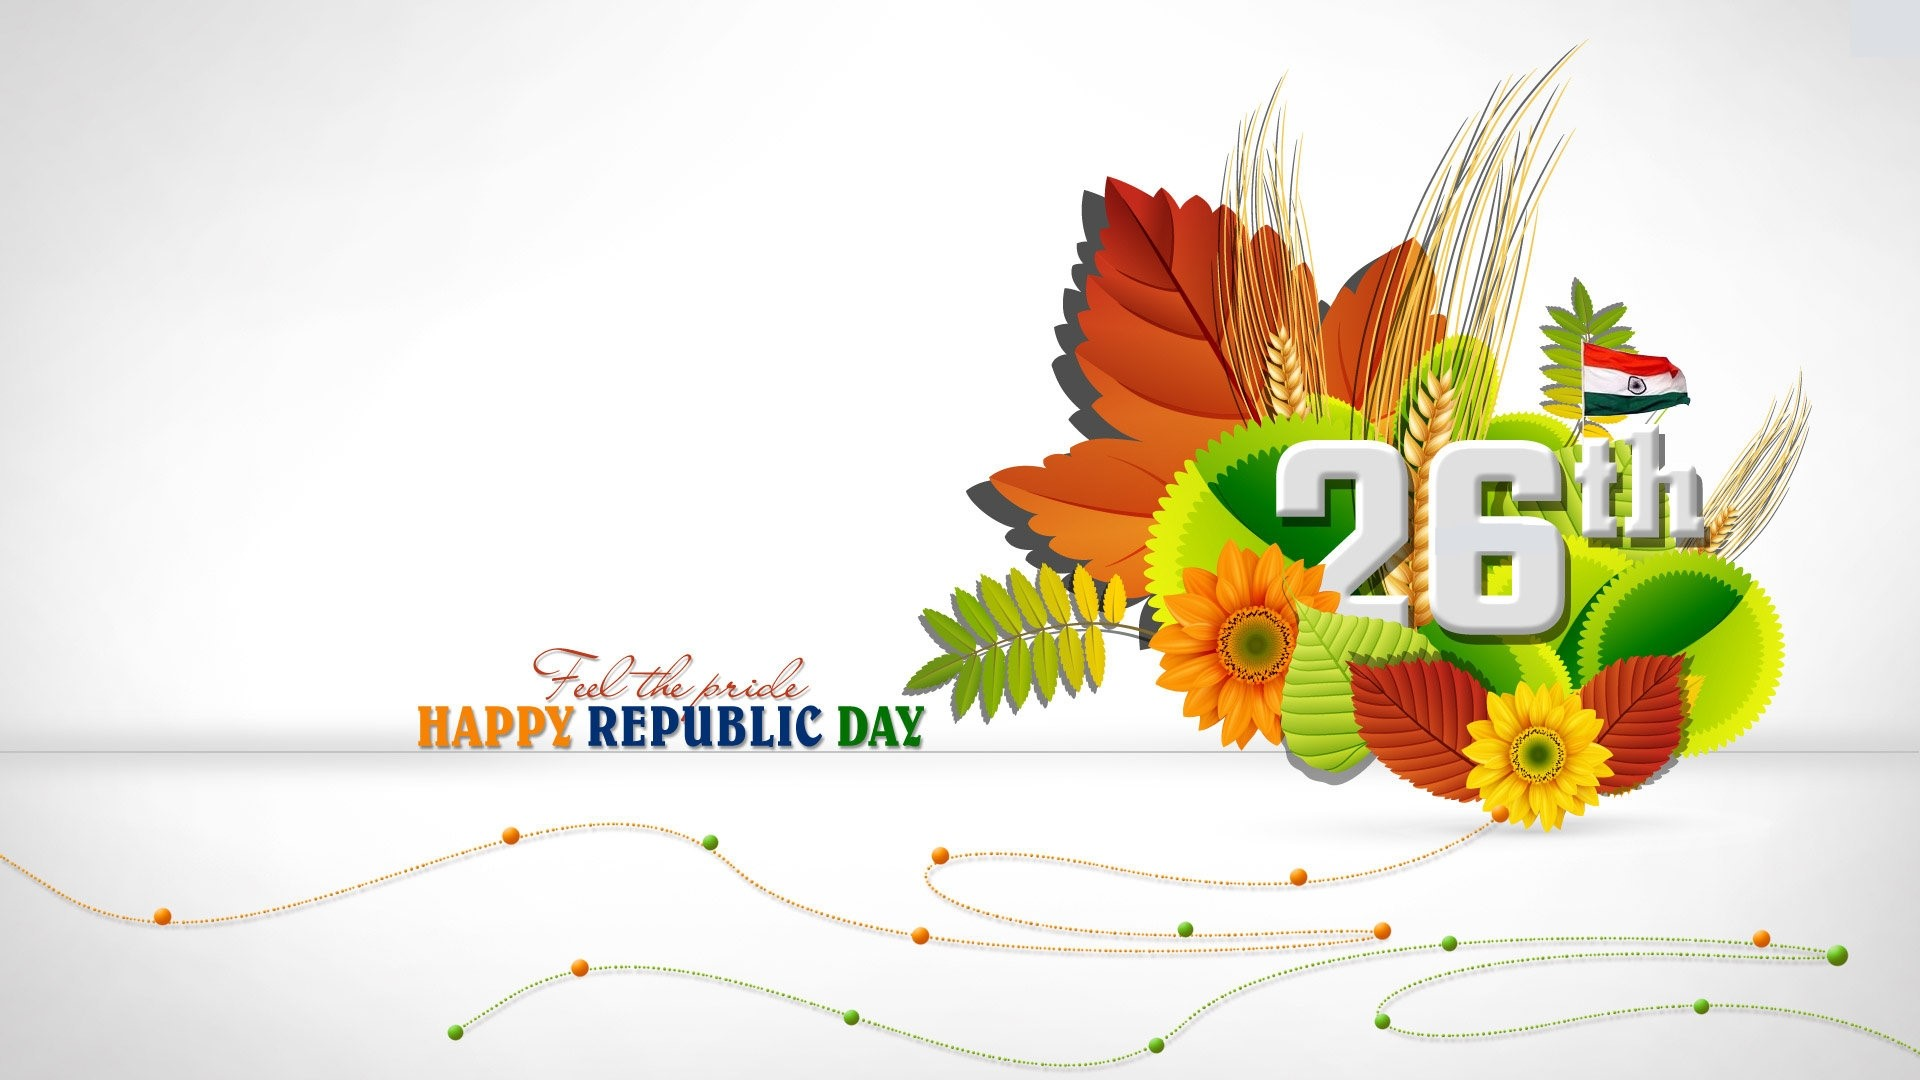 Amazing 26 January Happy Republic Day Greetings HD Wallpapers HD 1920x1080